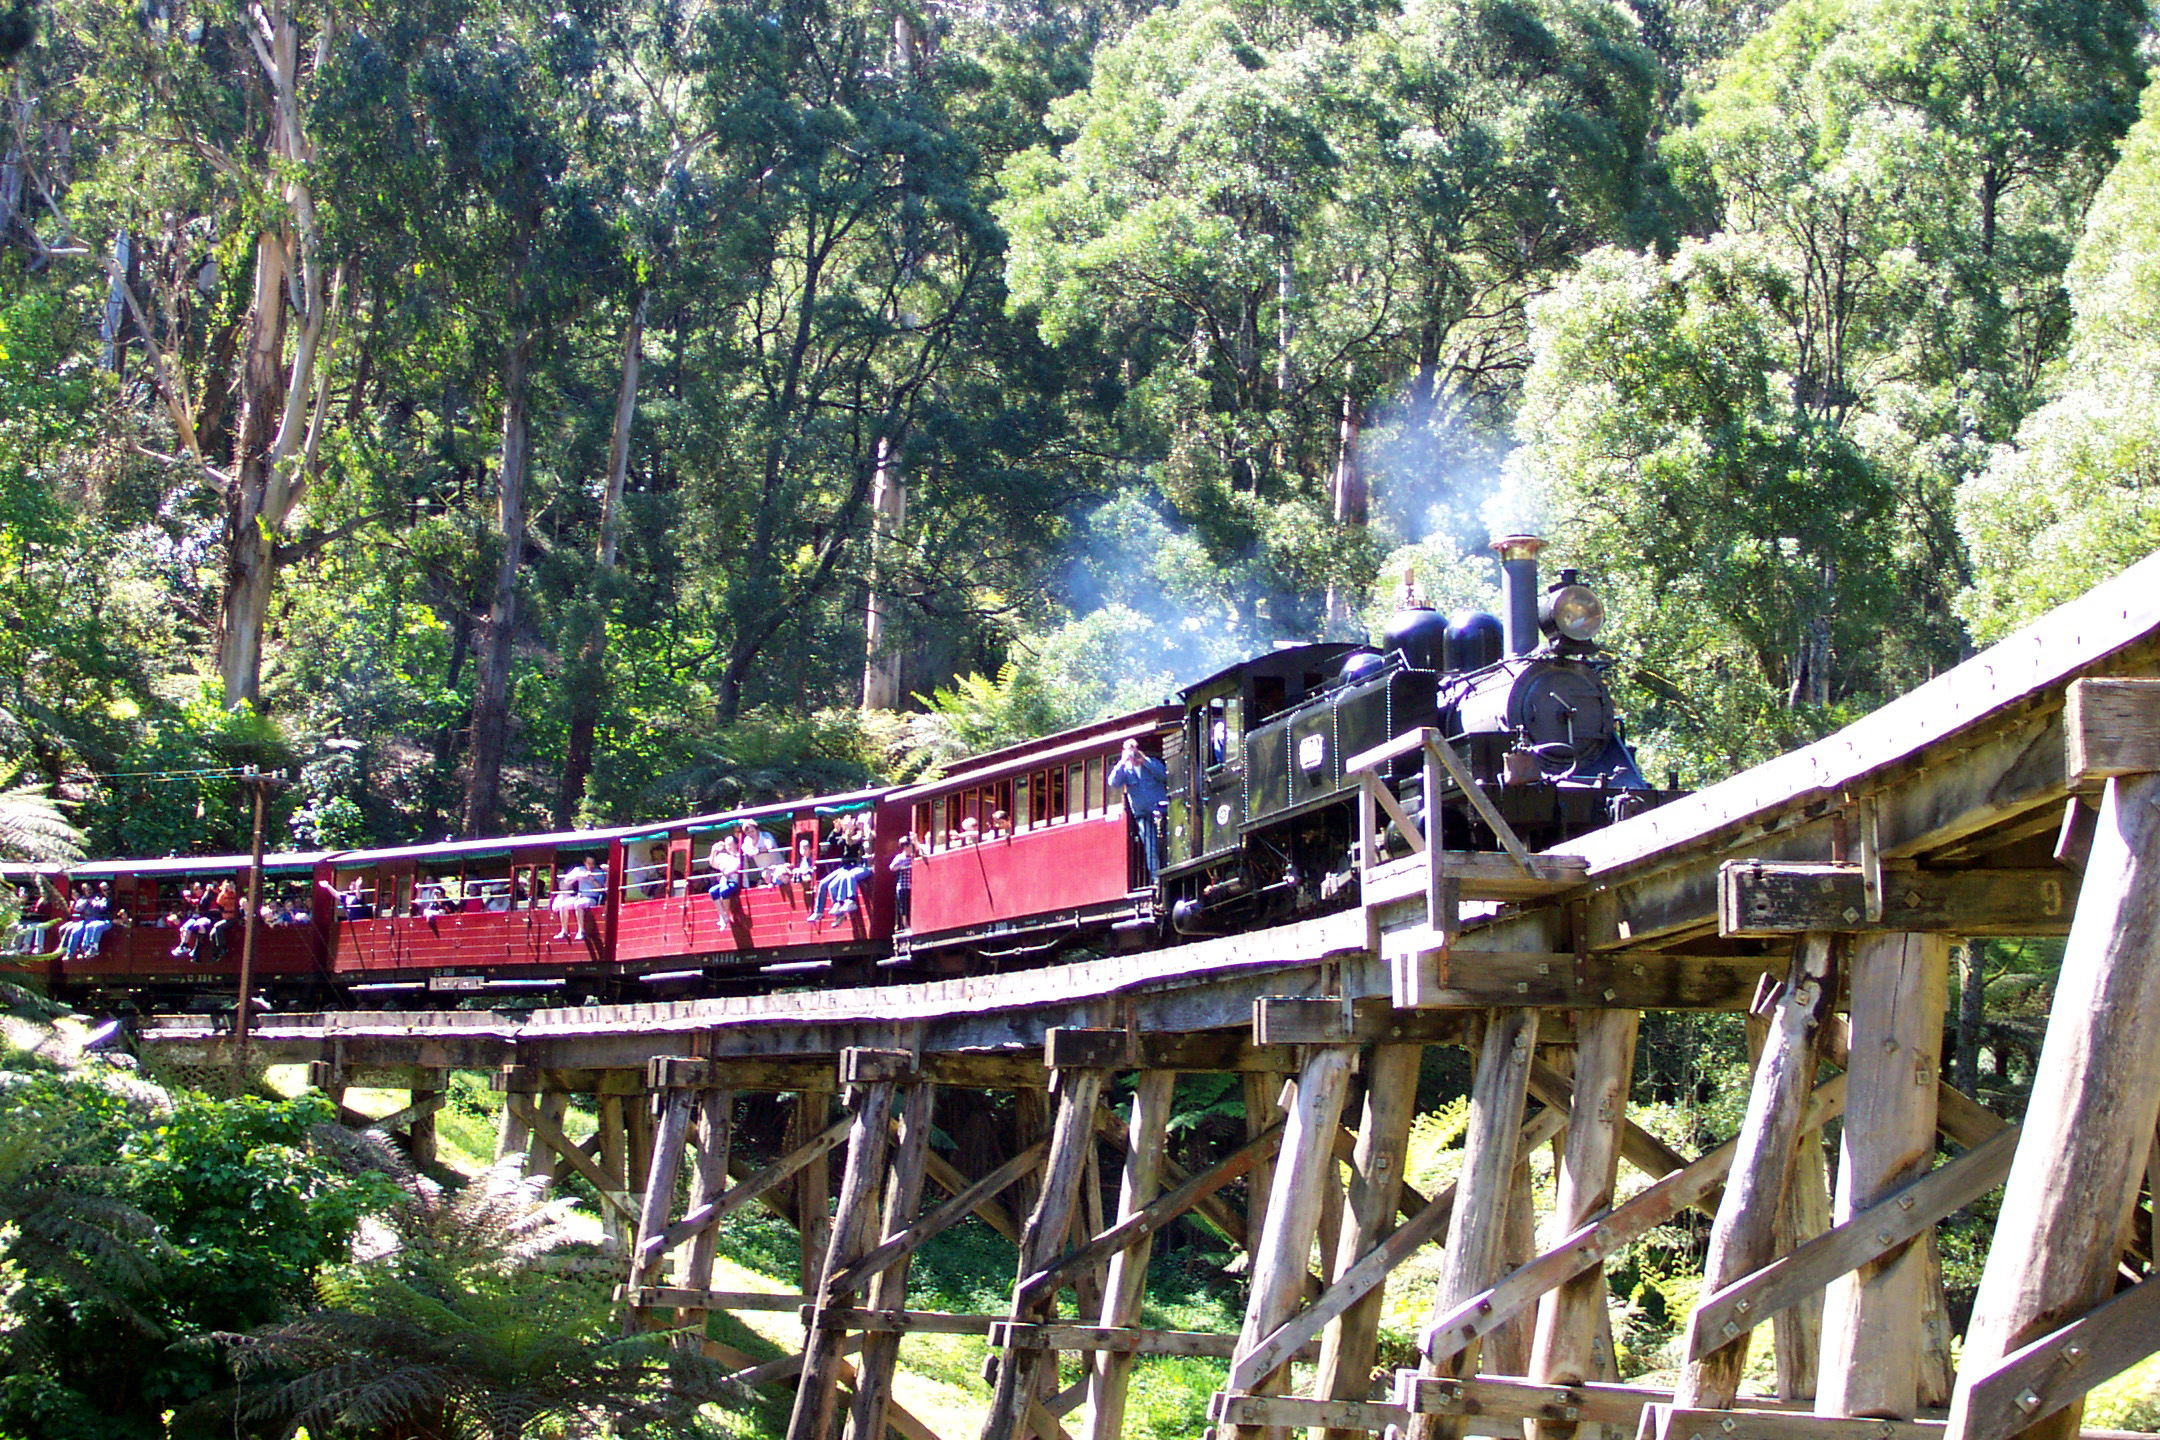 Ride through the forest from Belgrave on Puffing Billy steam train - an original steam locomotive